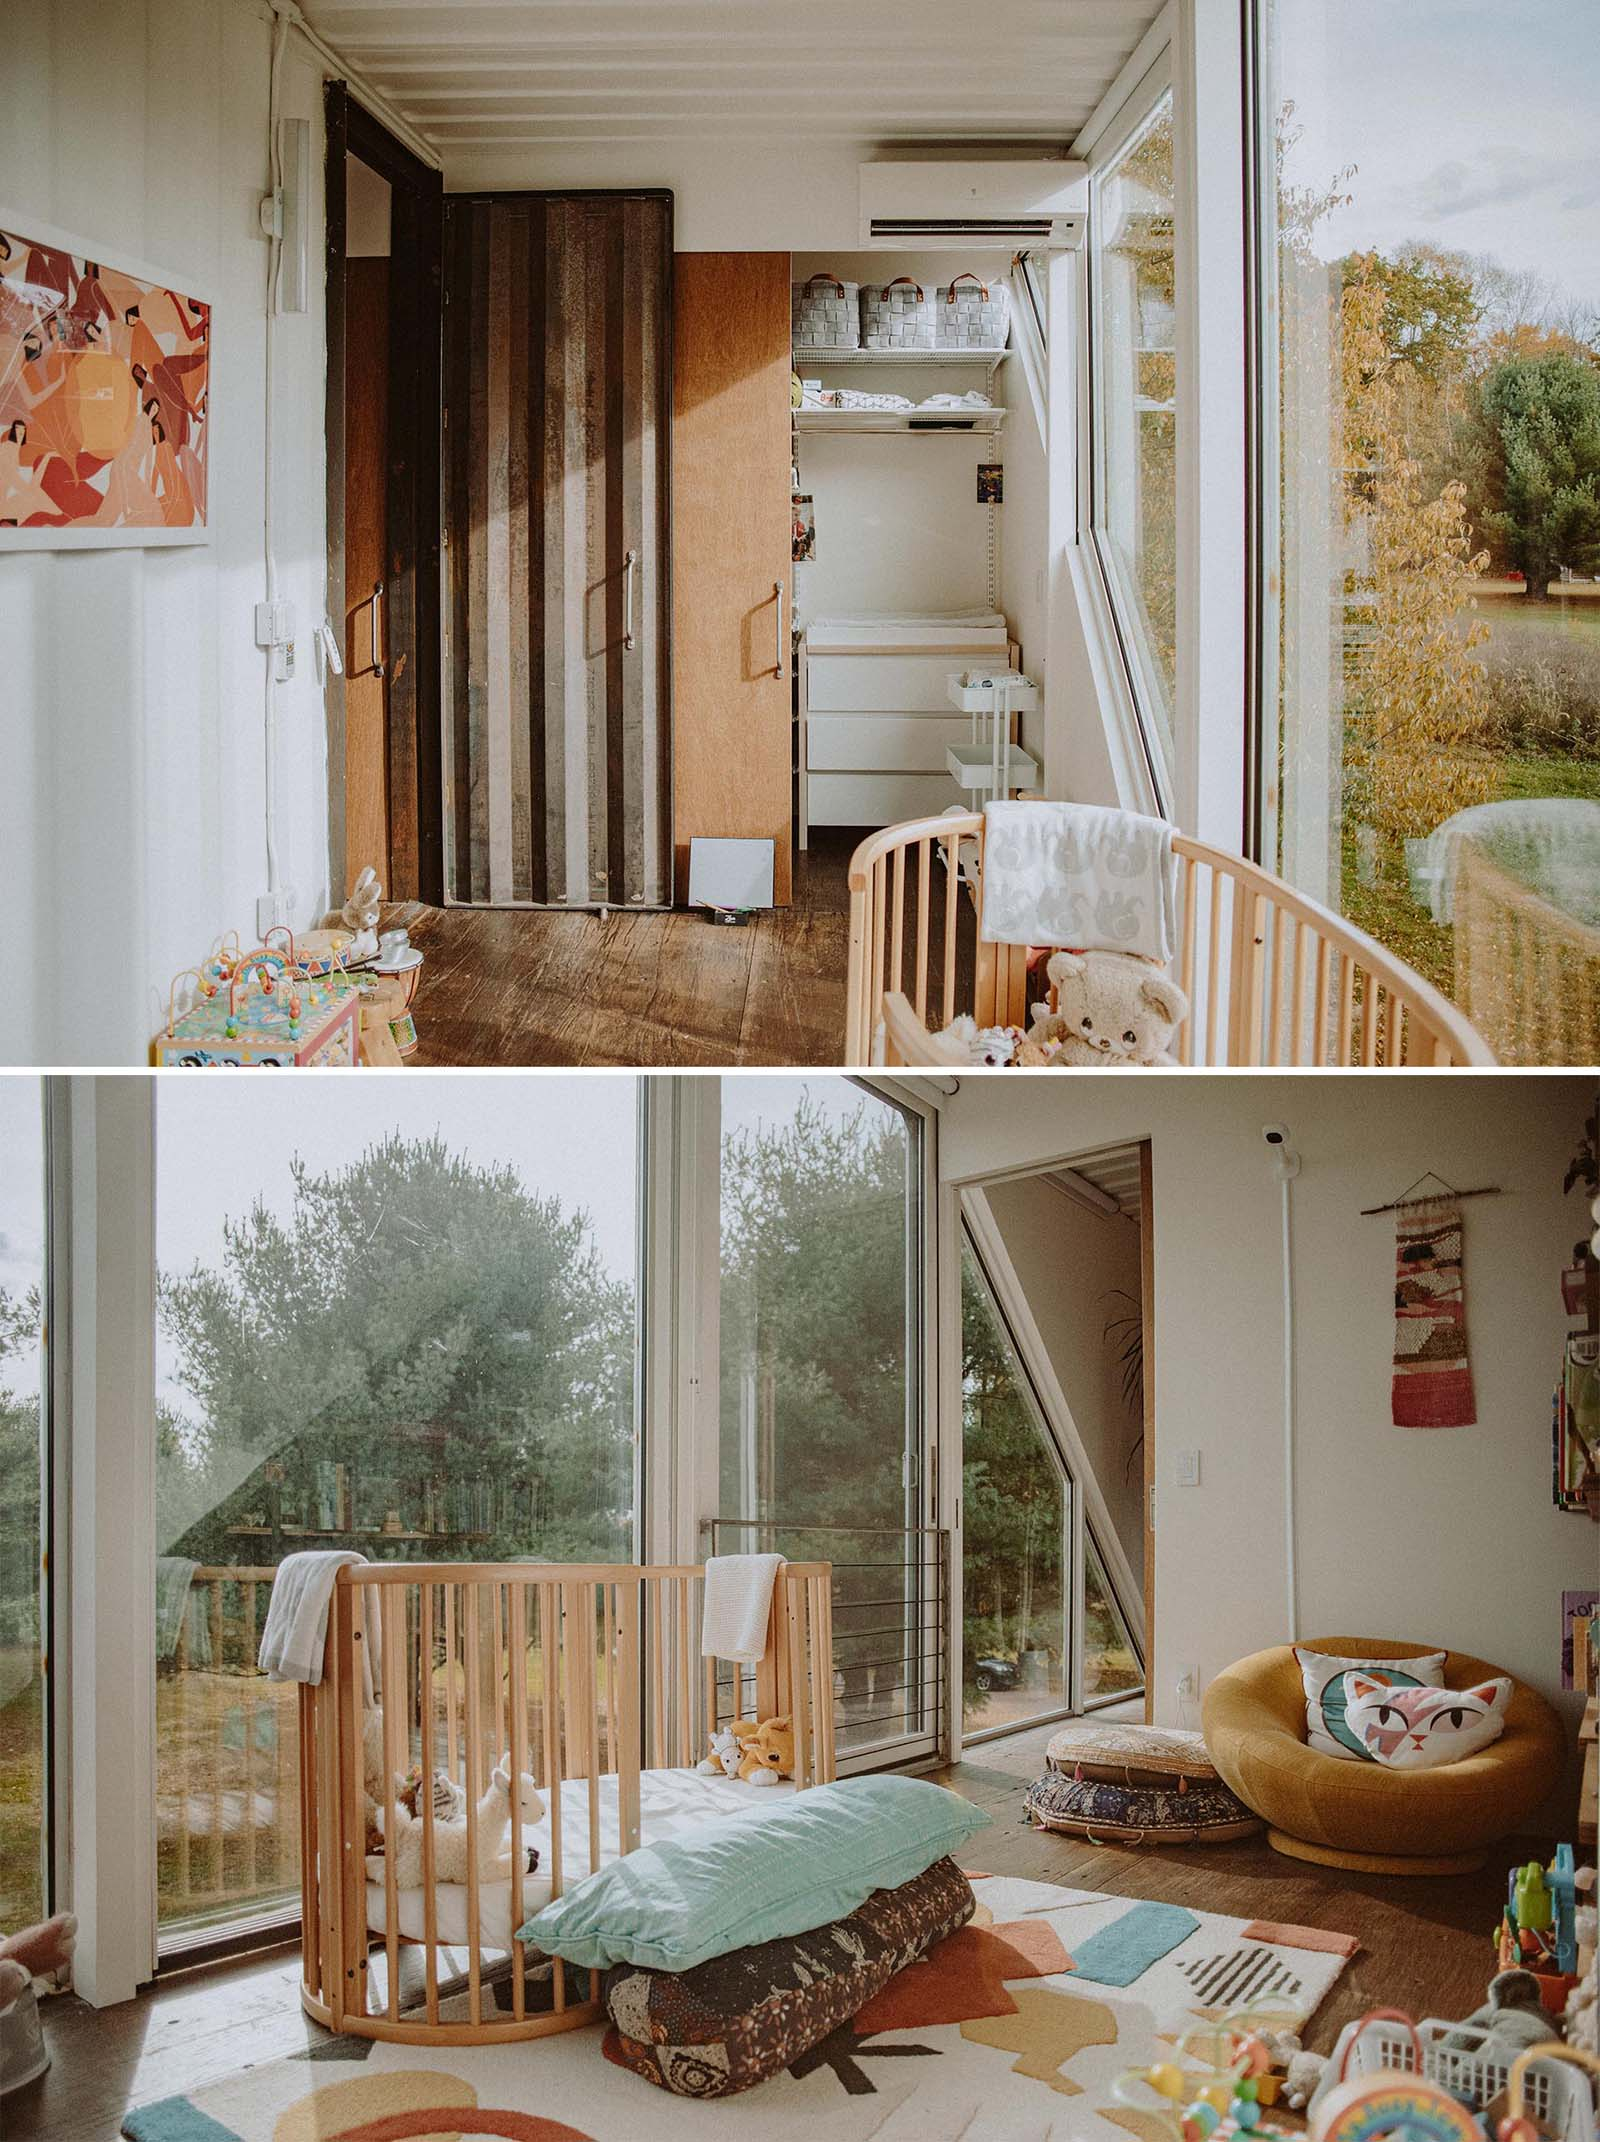 A modern nursery within a shipping container home.